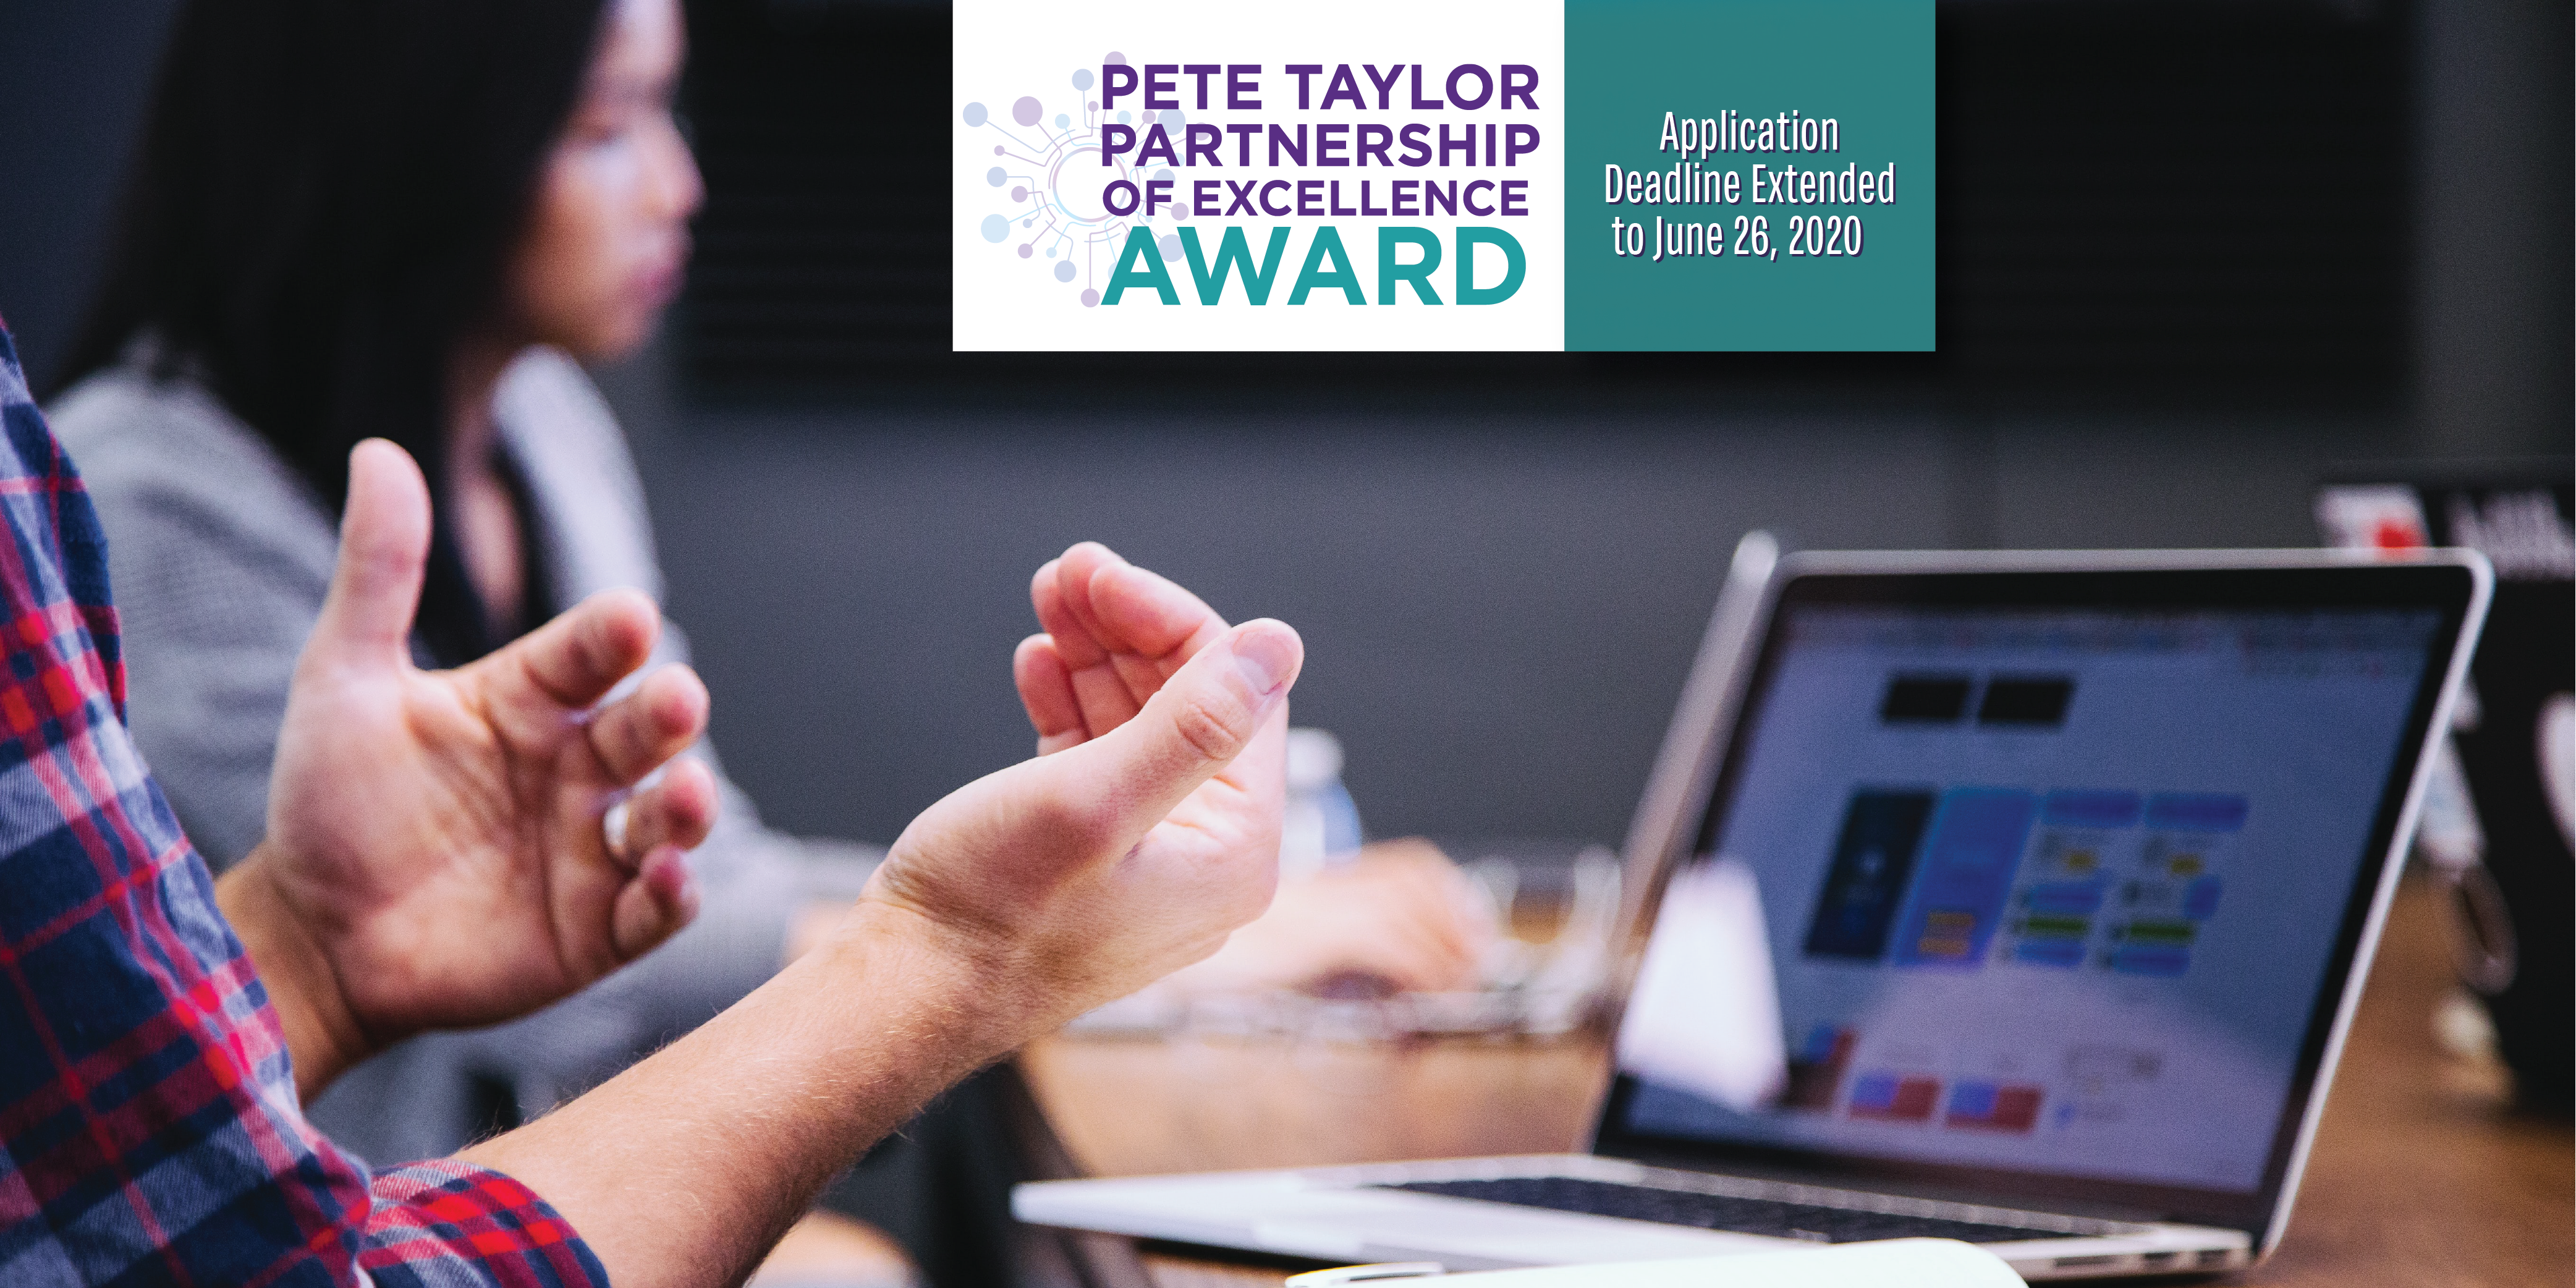 Pete Taylor Partnership of Excellence Award